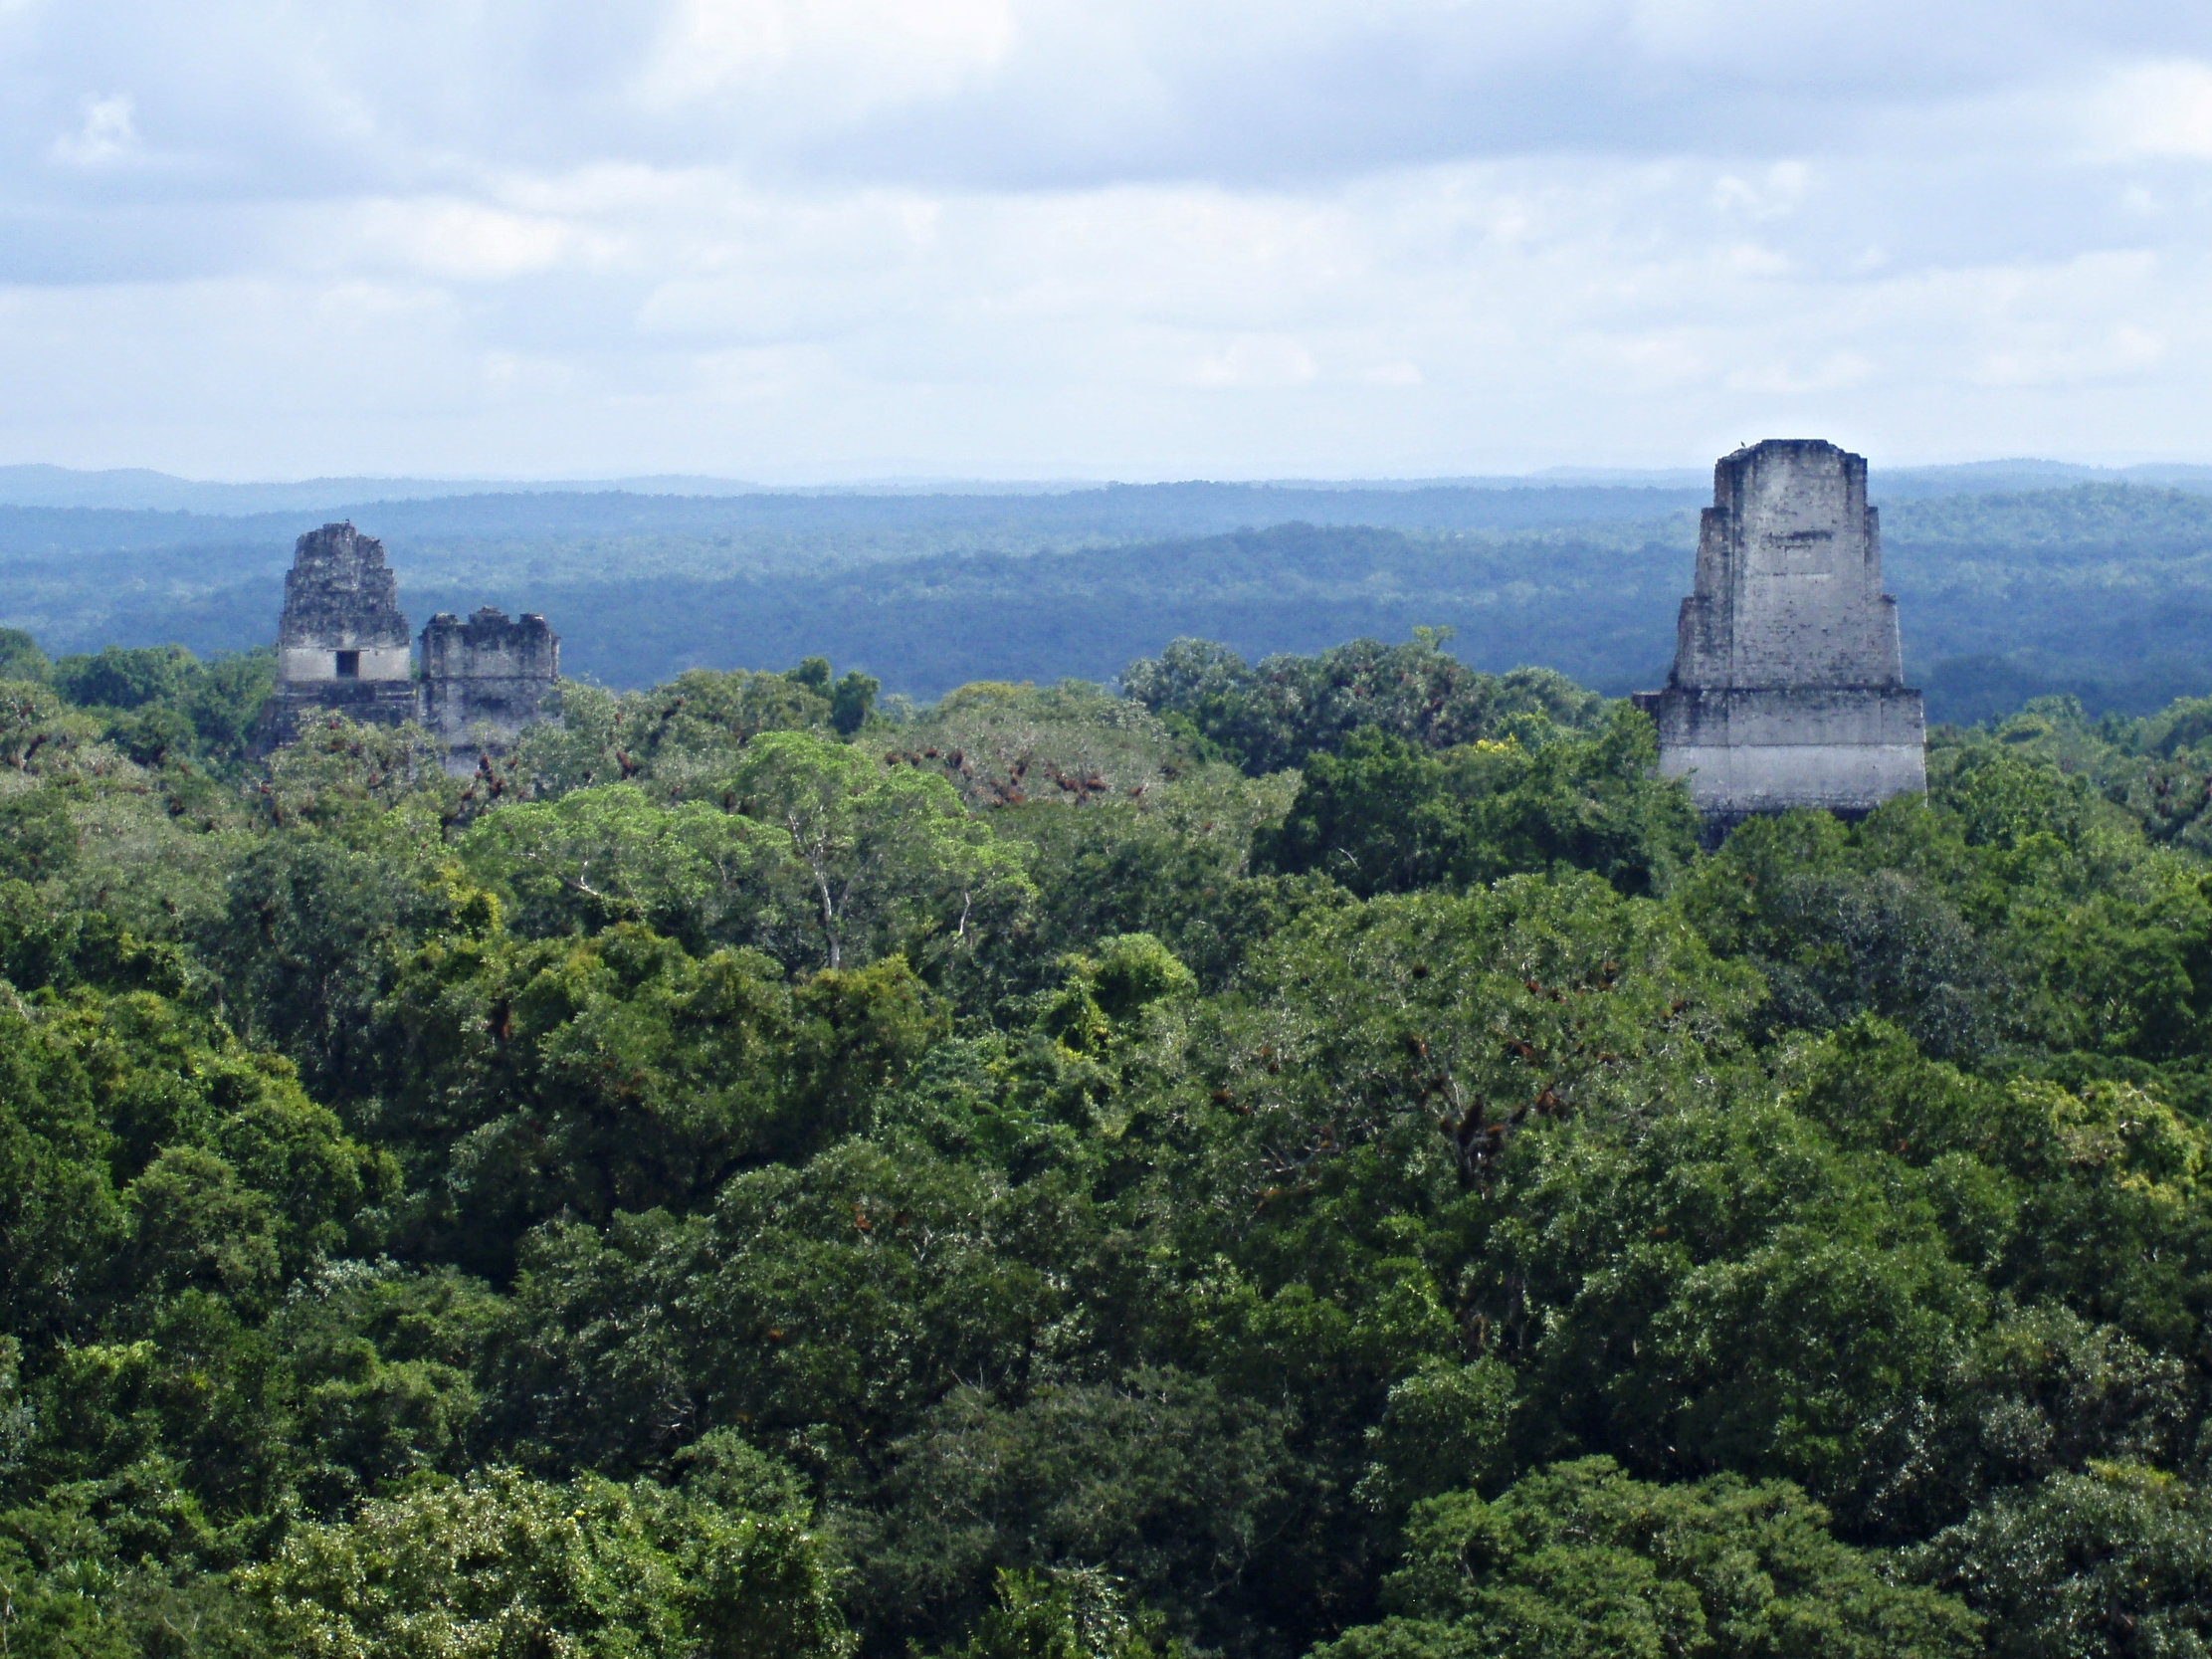 The view of the Temples One, Two and Three as seen from the top of Temple Four at Tikal